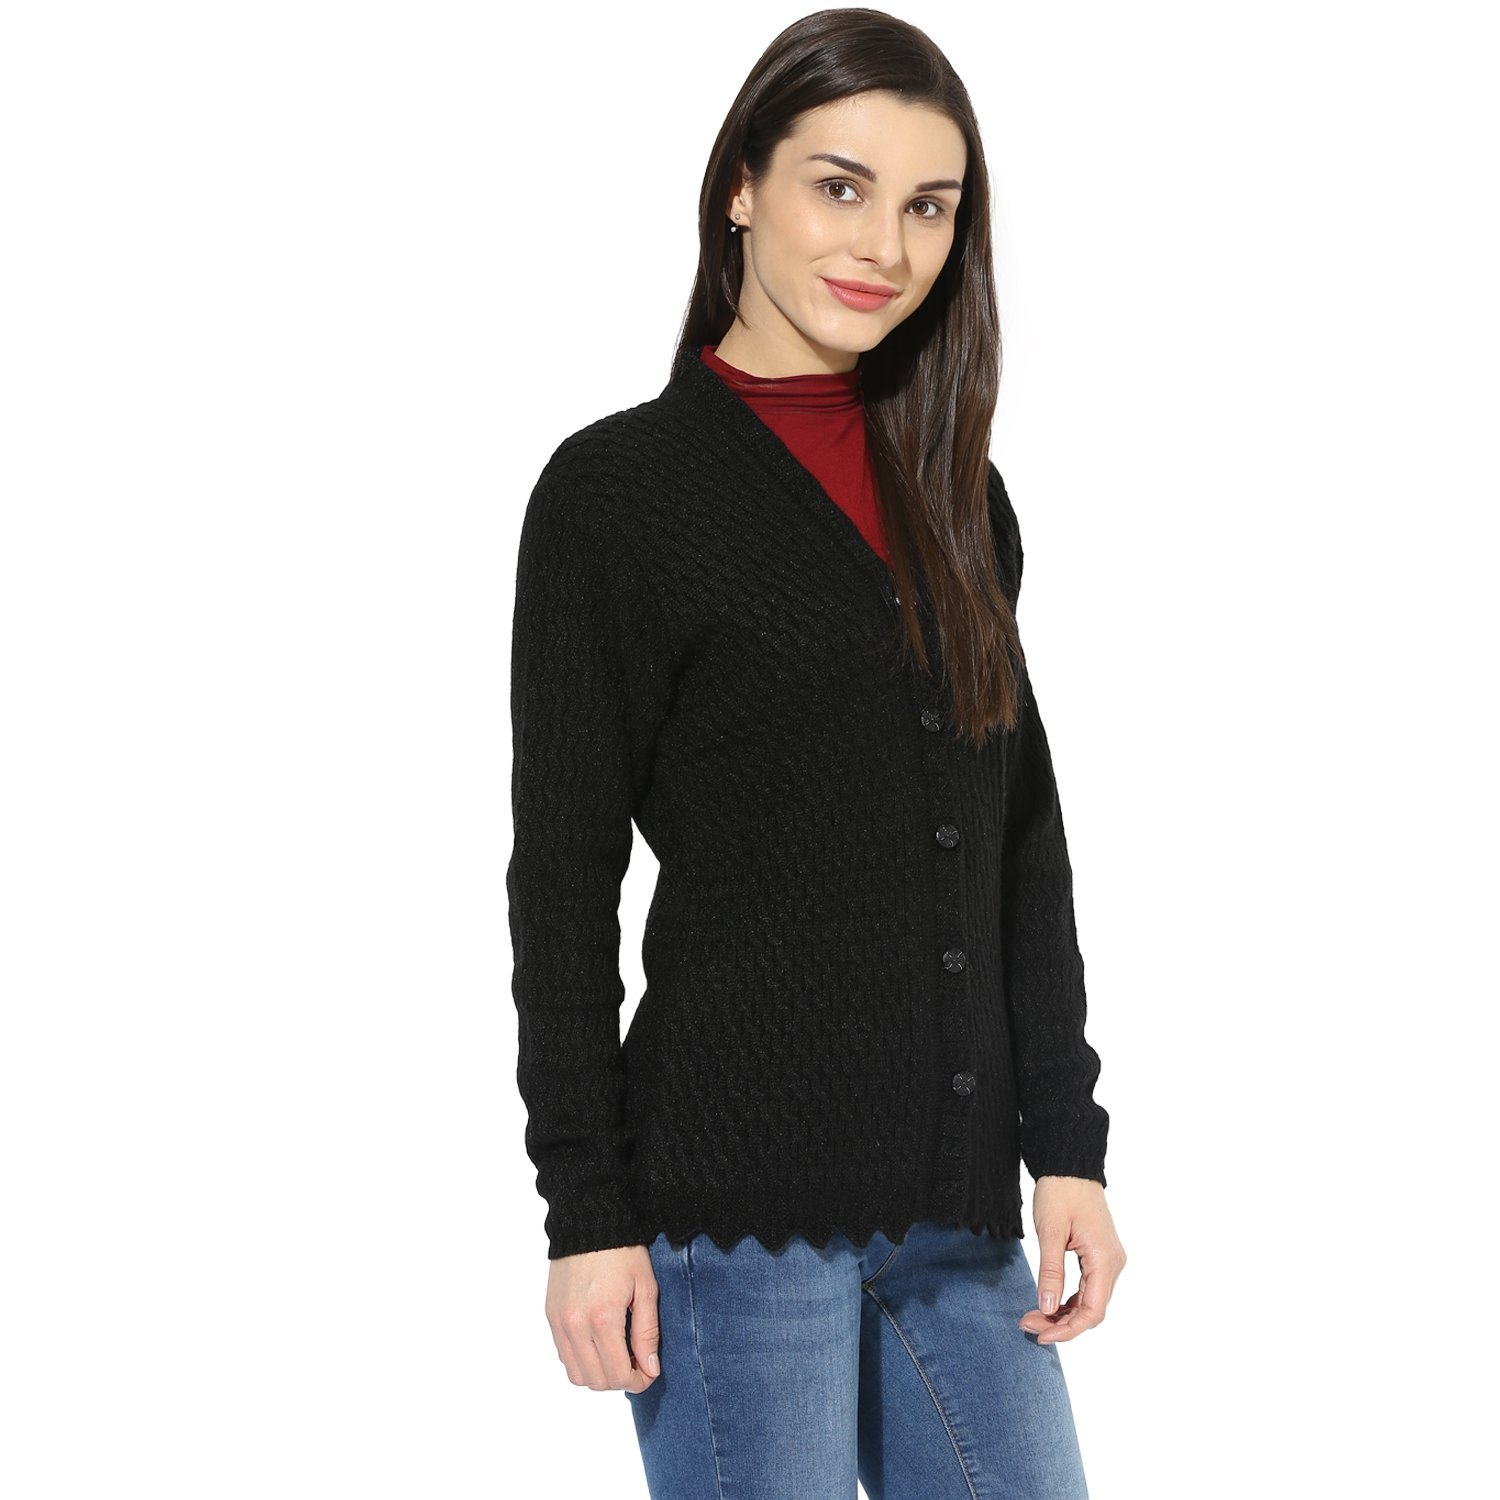 2110f47fd1a8 One Femme Women s Woollen Self-Design Solid Color Cardigan  Amazon.co.uk   Clothing